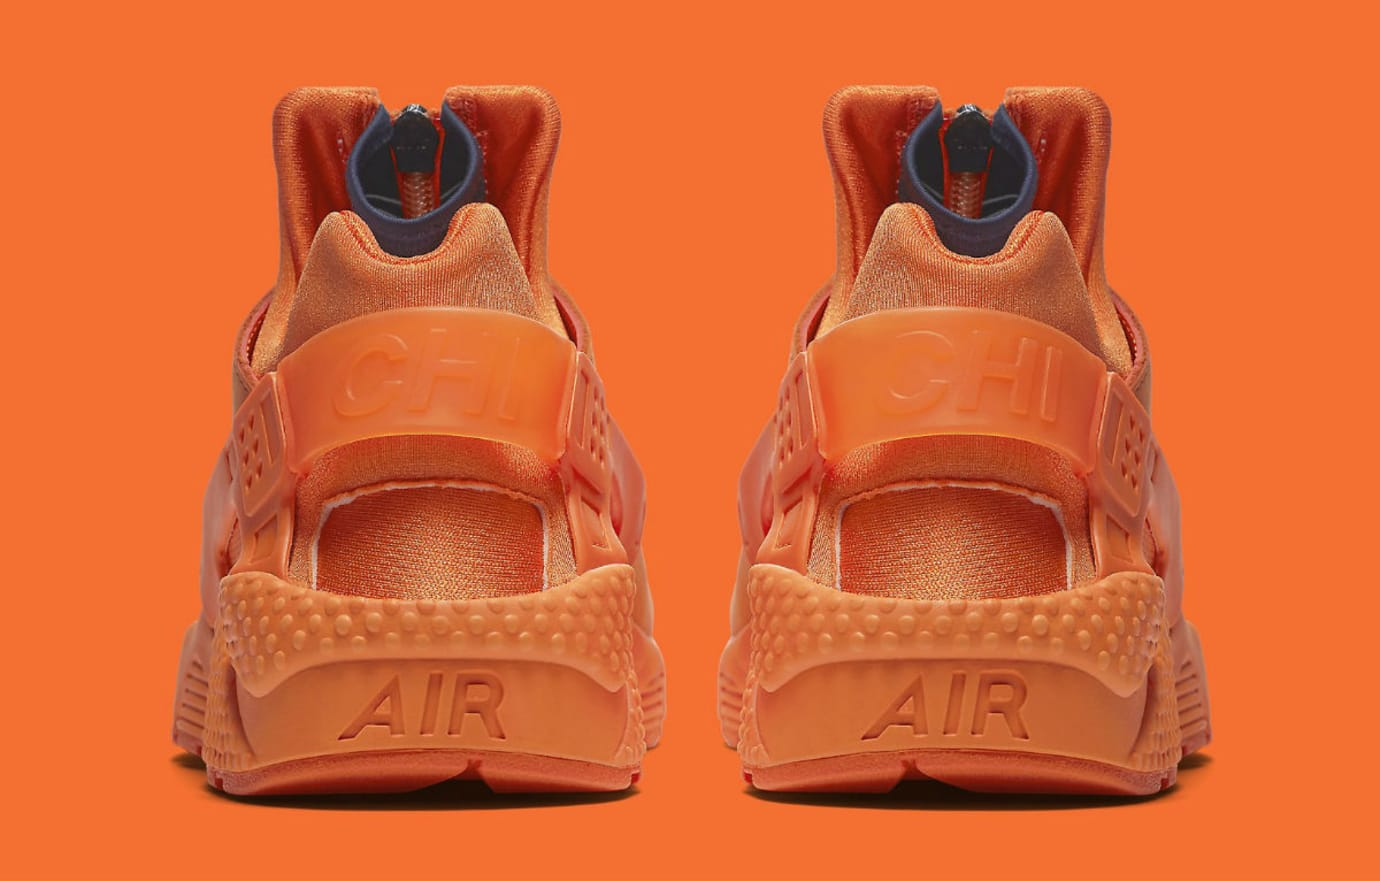 700dad47e Nike Air Huarache Run Chicago Orange Release Date AJ5578-800 Heel